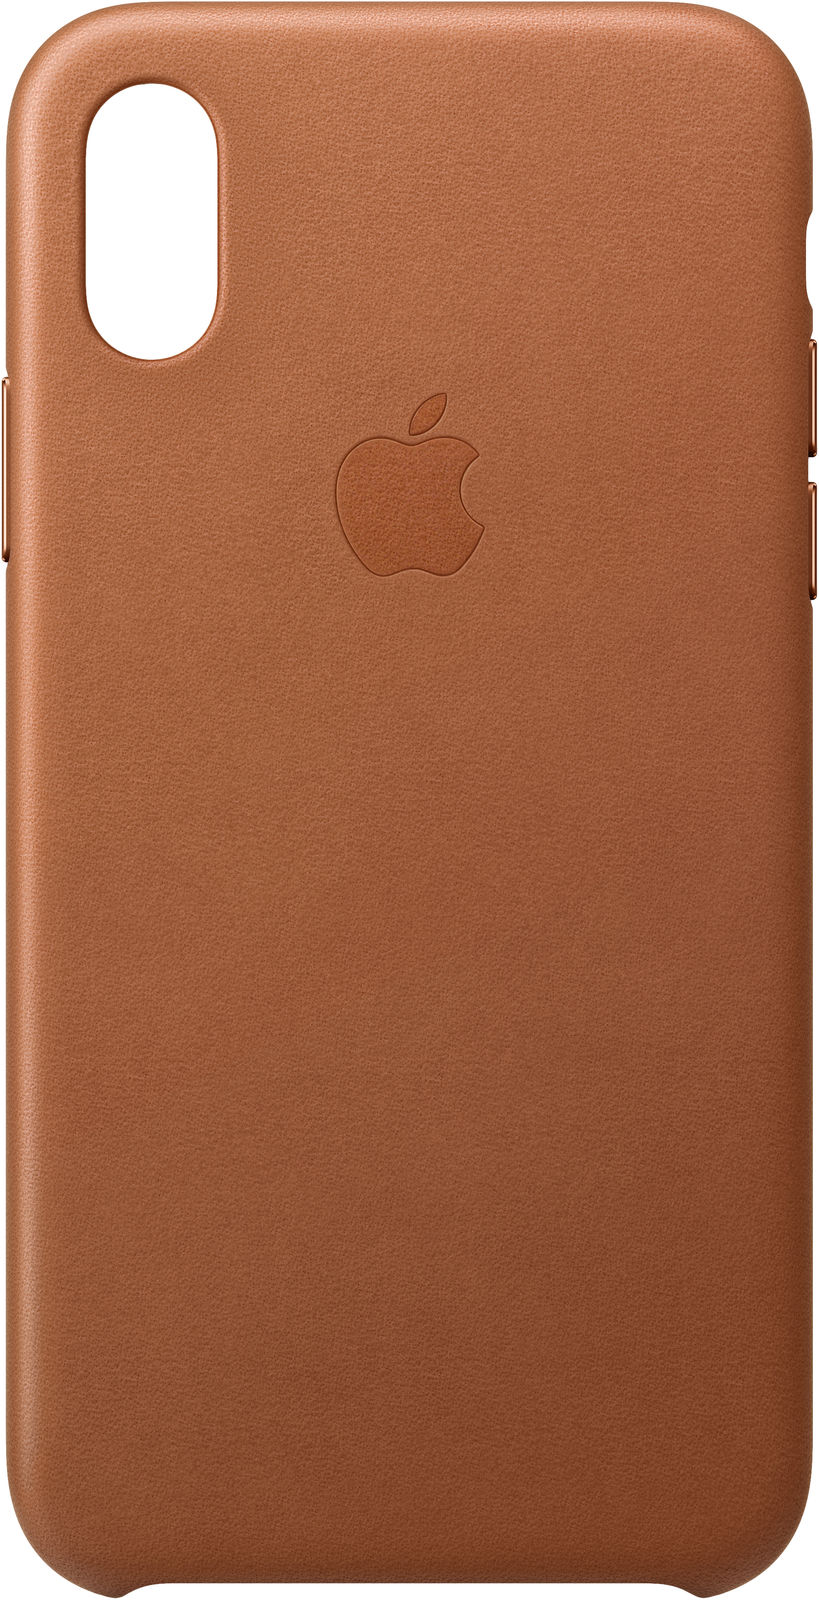 iPhone Xs - Leather Case - Saddle Brown